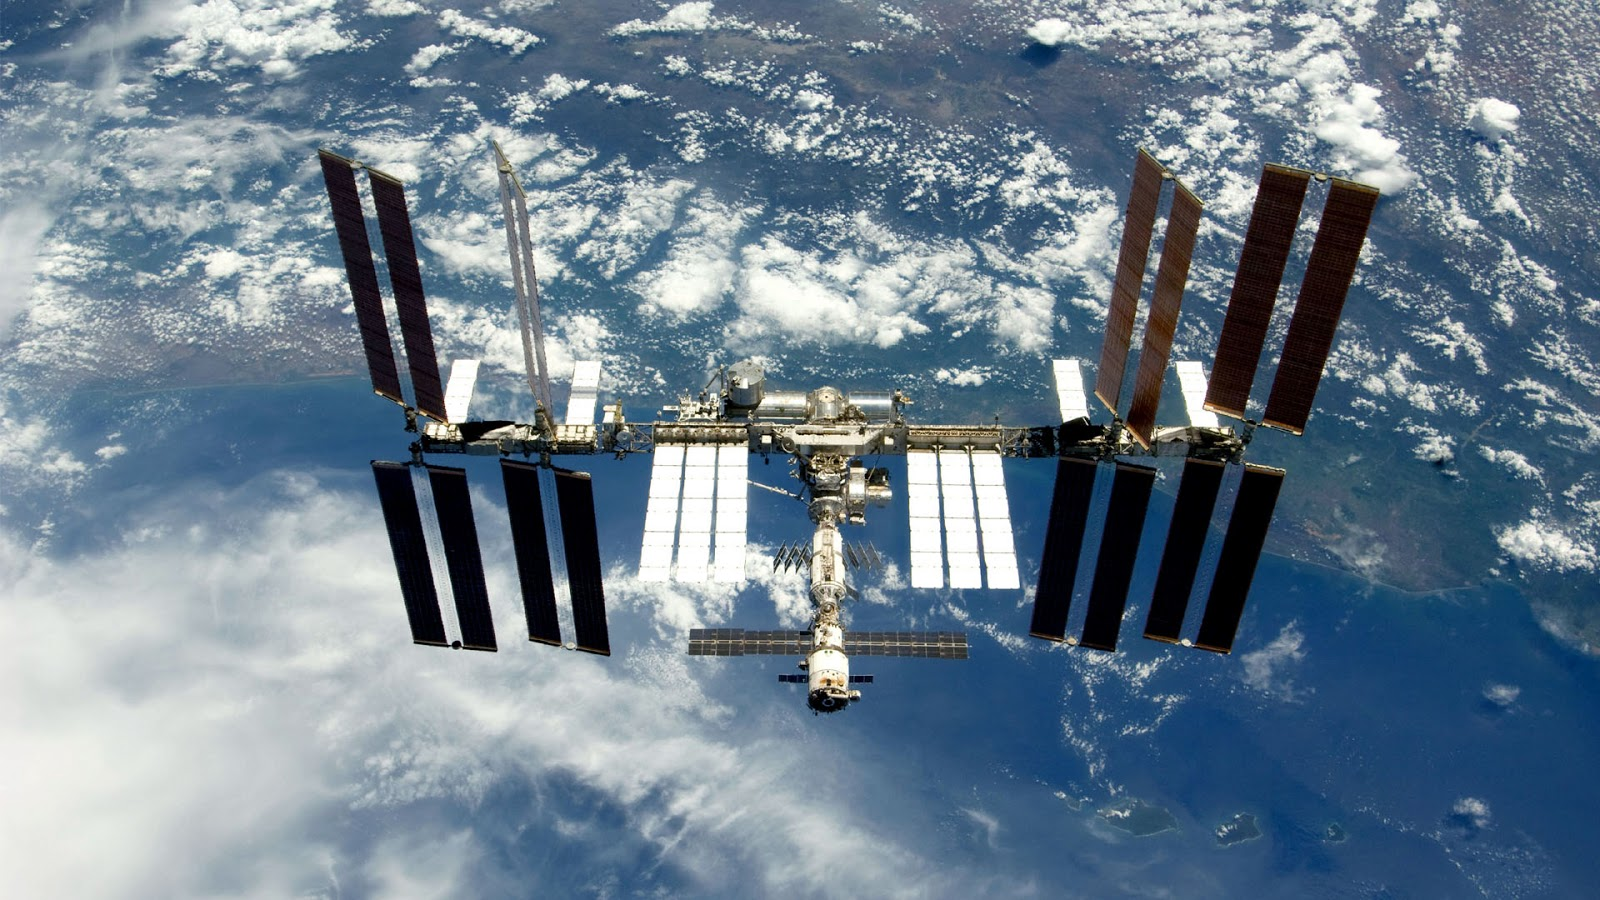 Iss Wallpapers Hd: International Space Station HD Wallpapers 1080p